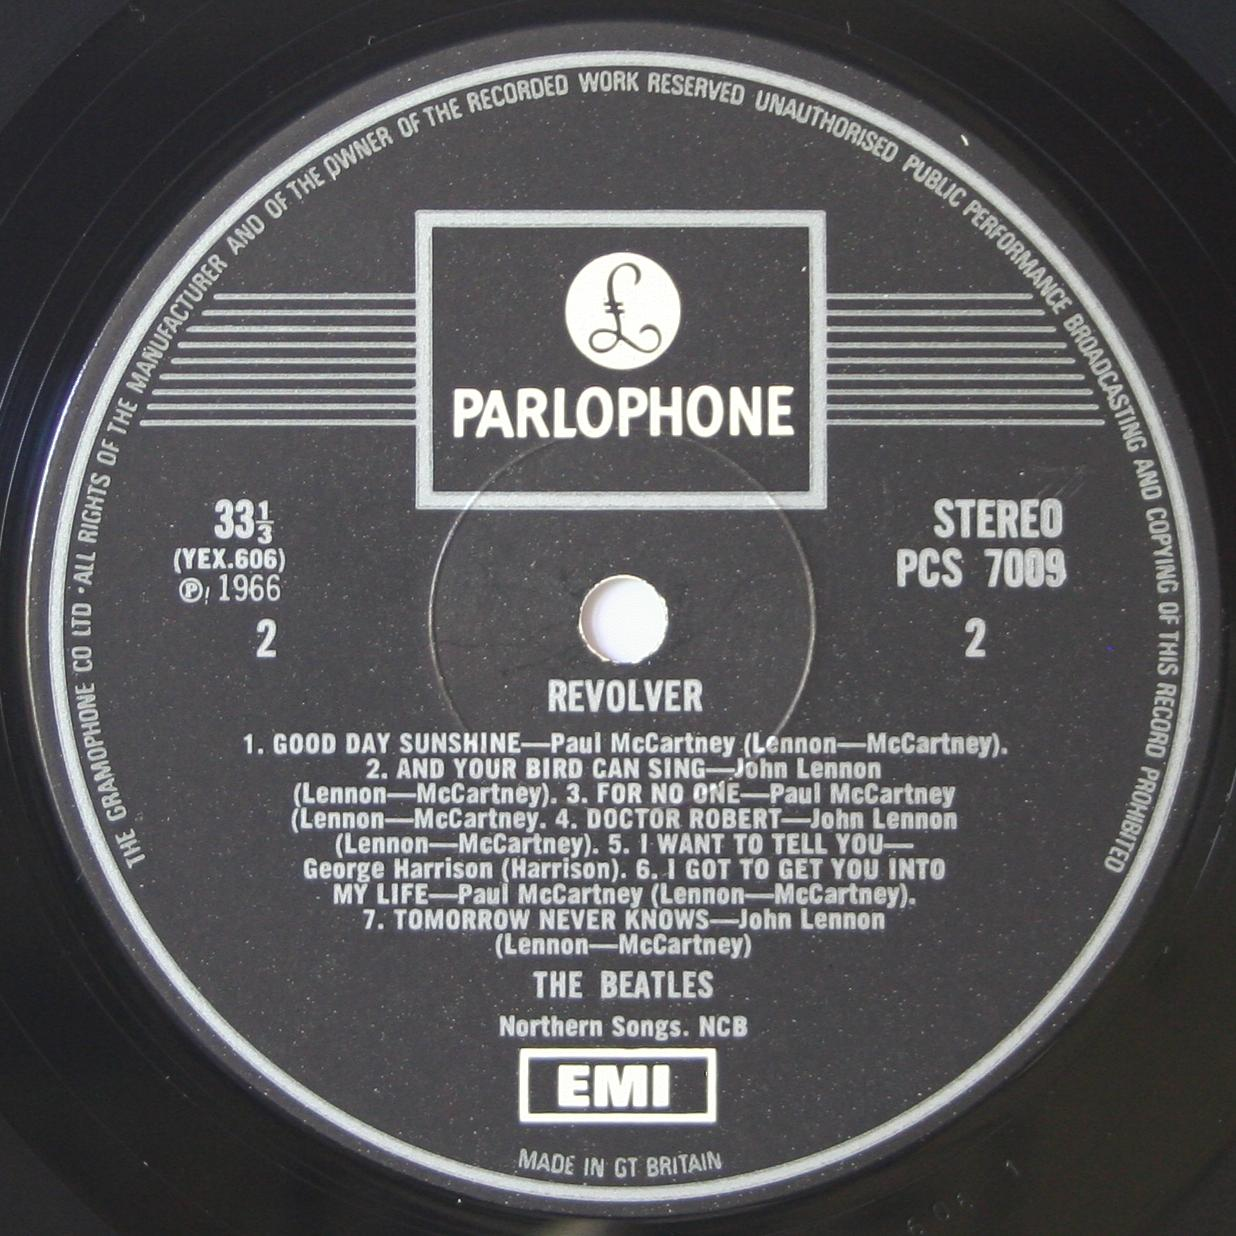 The Beatles Collection 187 Search Results 187 Revolver Stereo